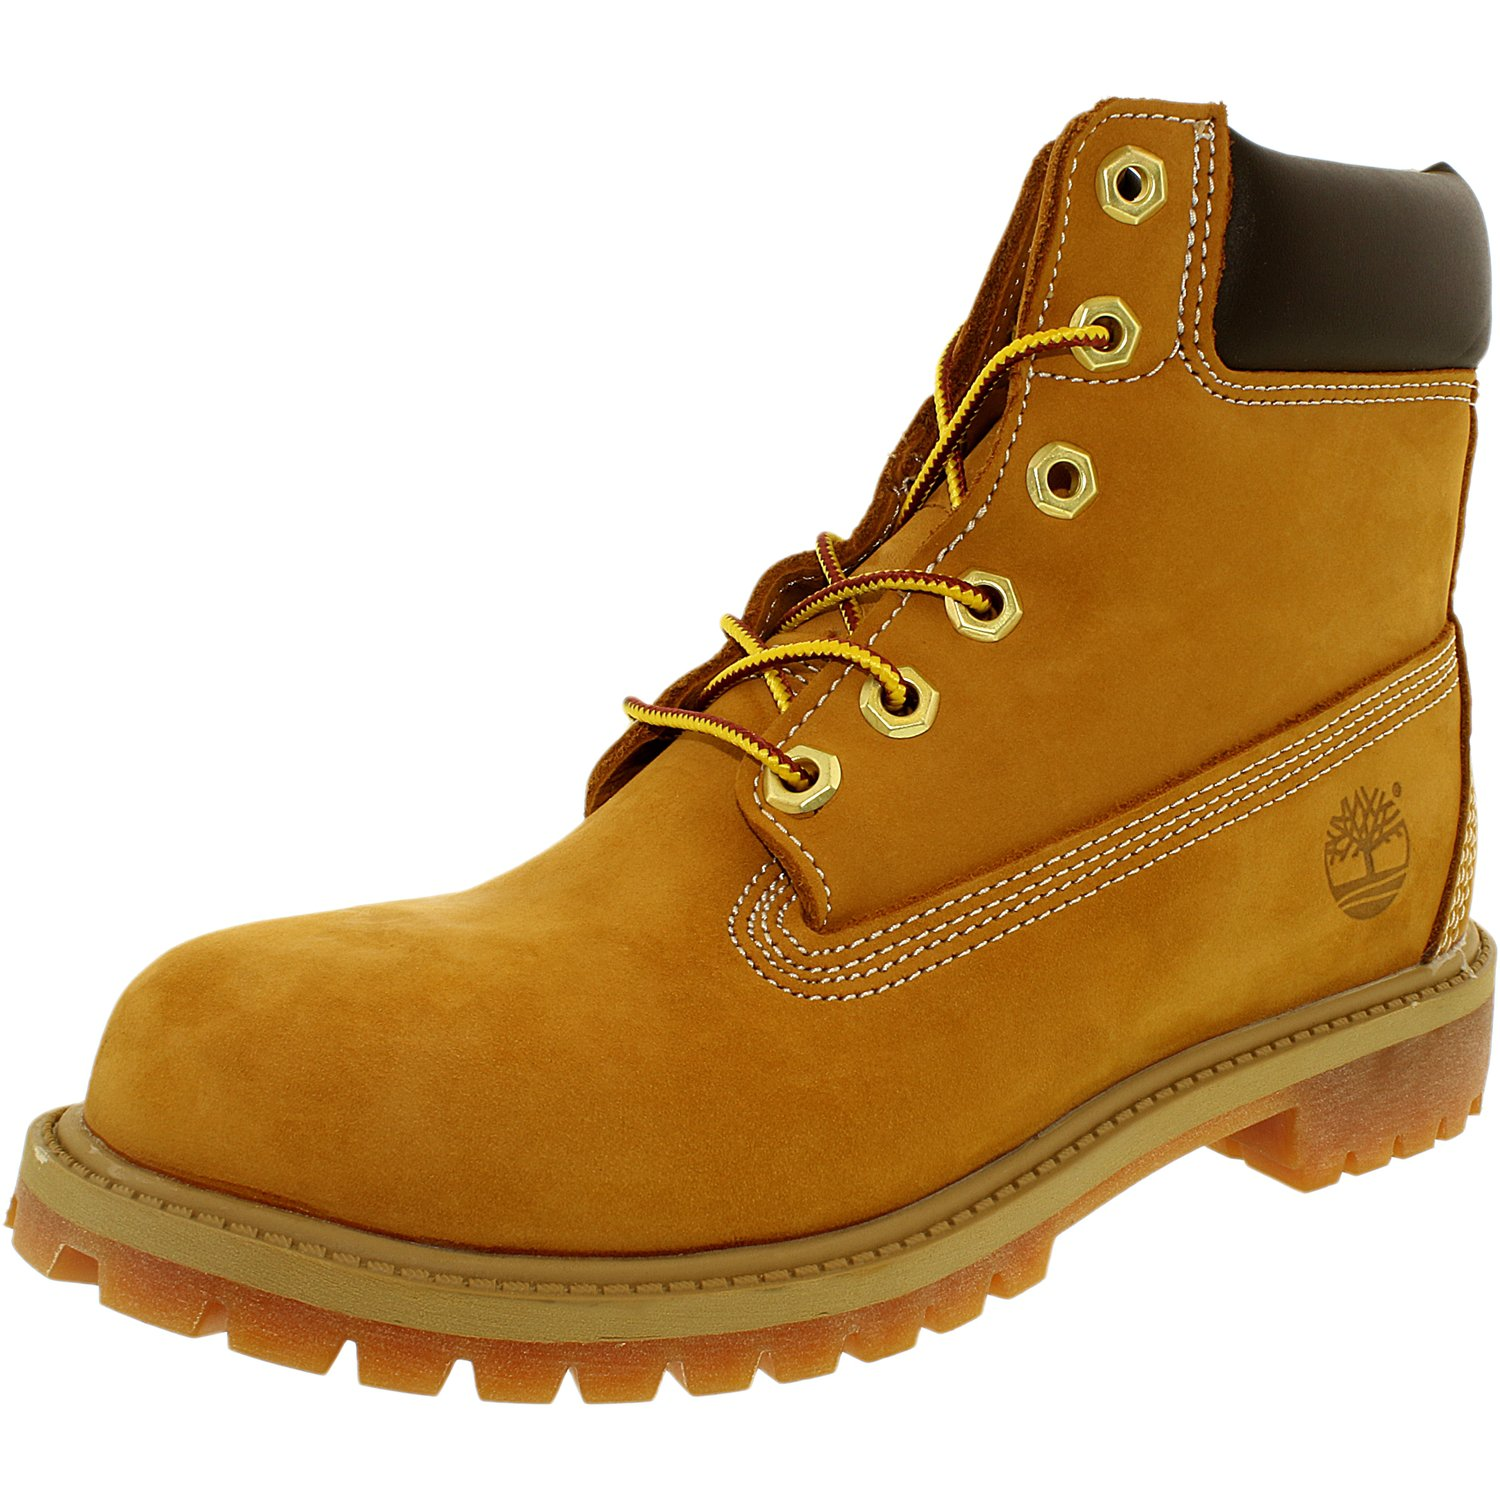 Timberland 6-Inch Premium Waterproof Boot Big Kid,Wheat Nubuck TB012909, 6 M US Big Kid